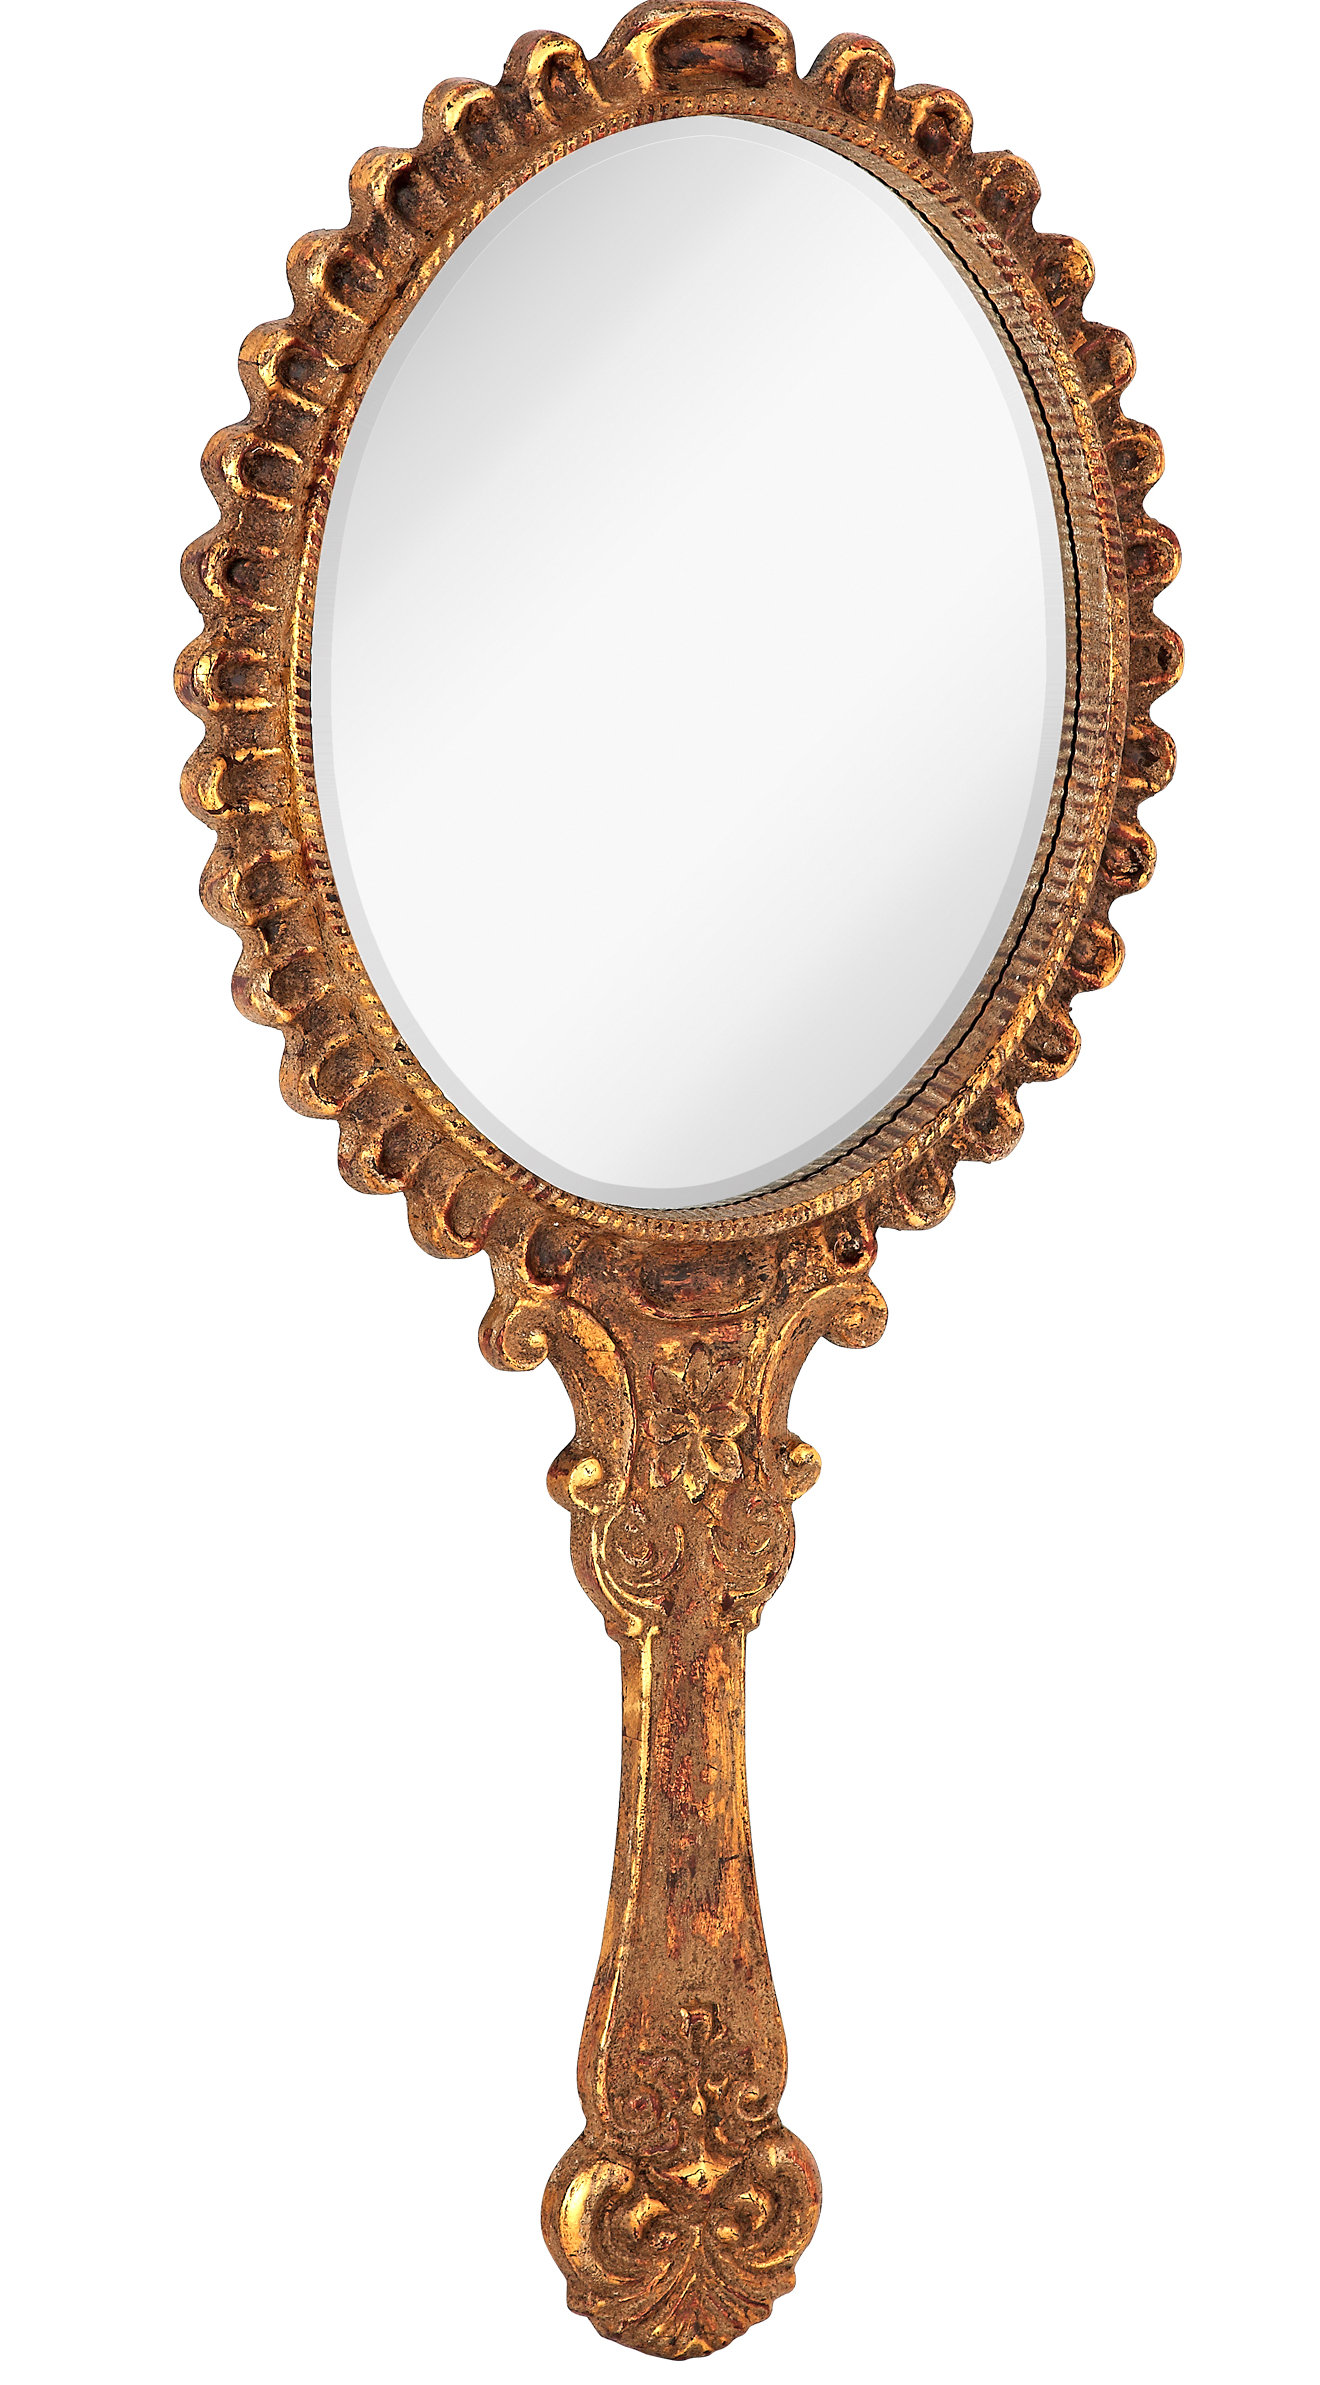 Hand Mirror Drawing   Free download on ClipArtMag (1320 x 2385 Pixel)